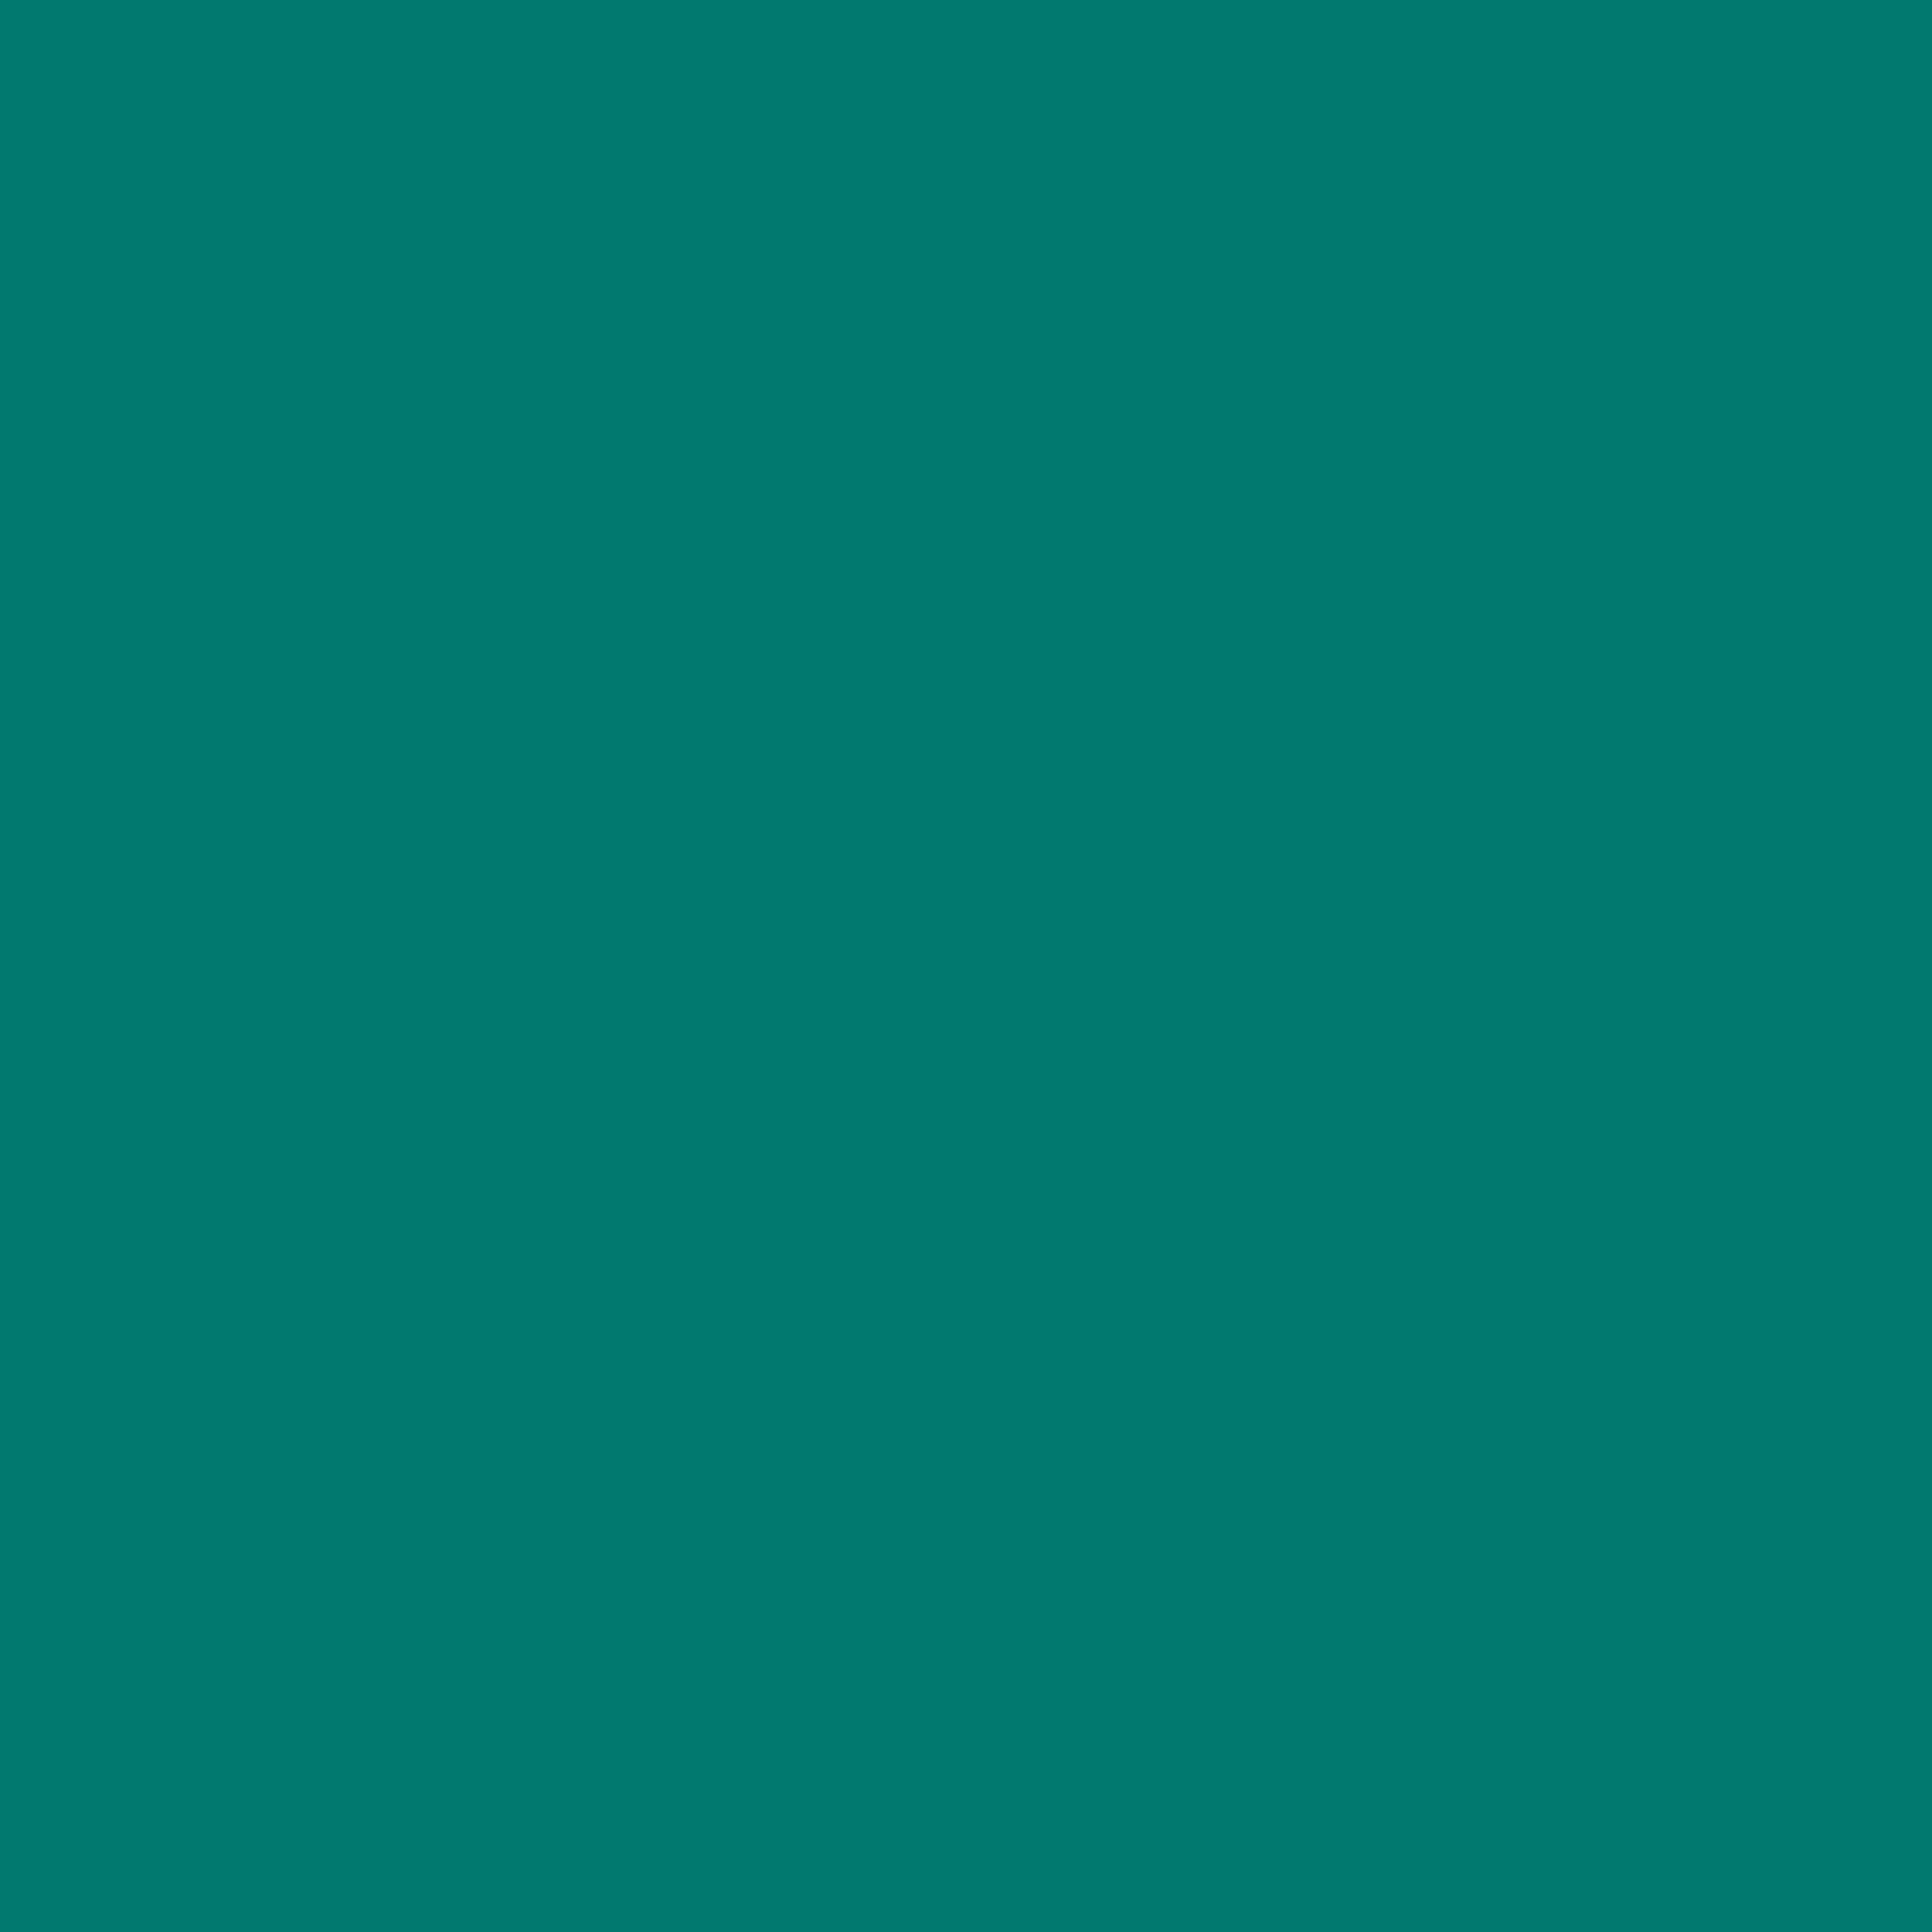 3600x3600 Pine Green Solid Color Background